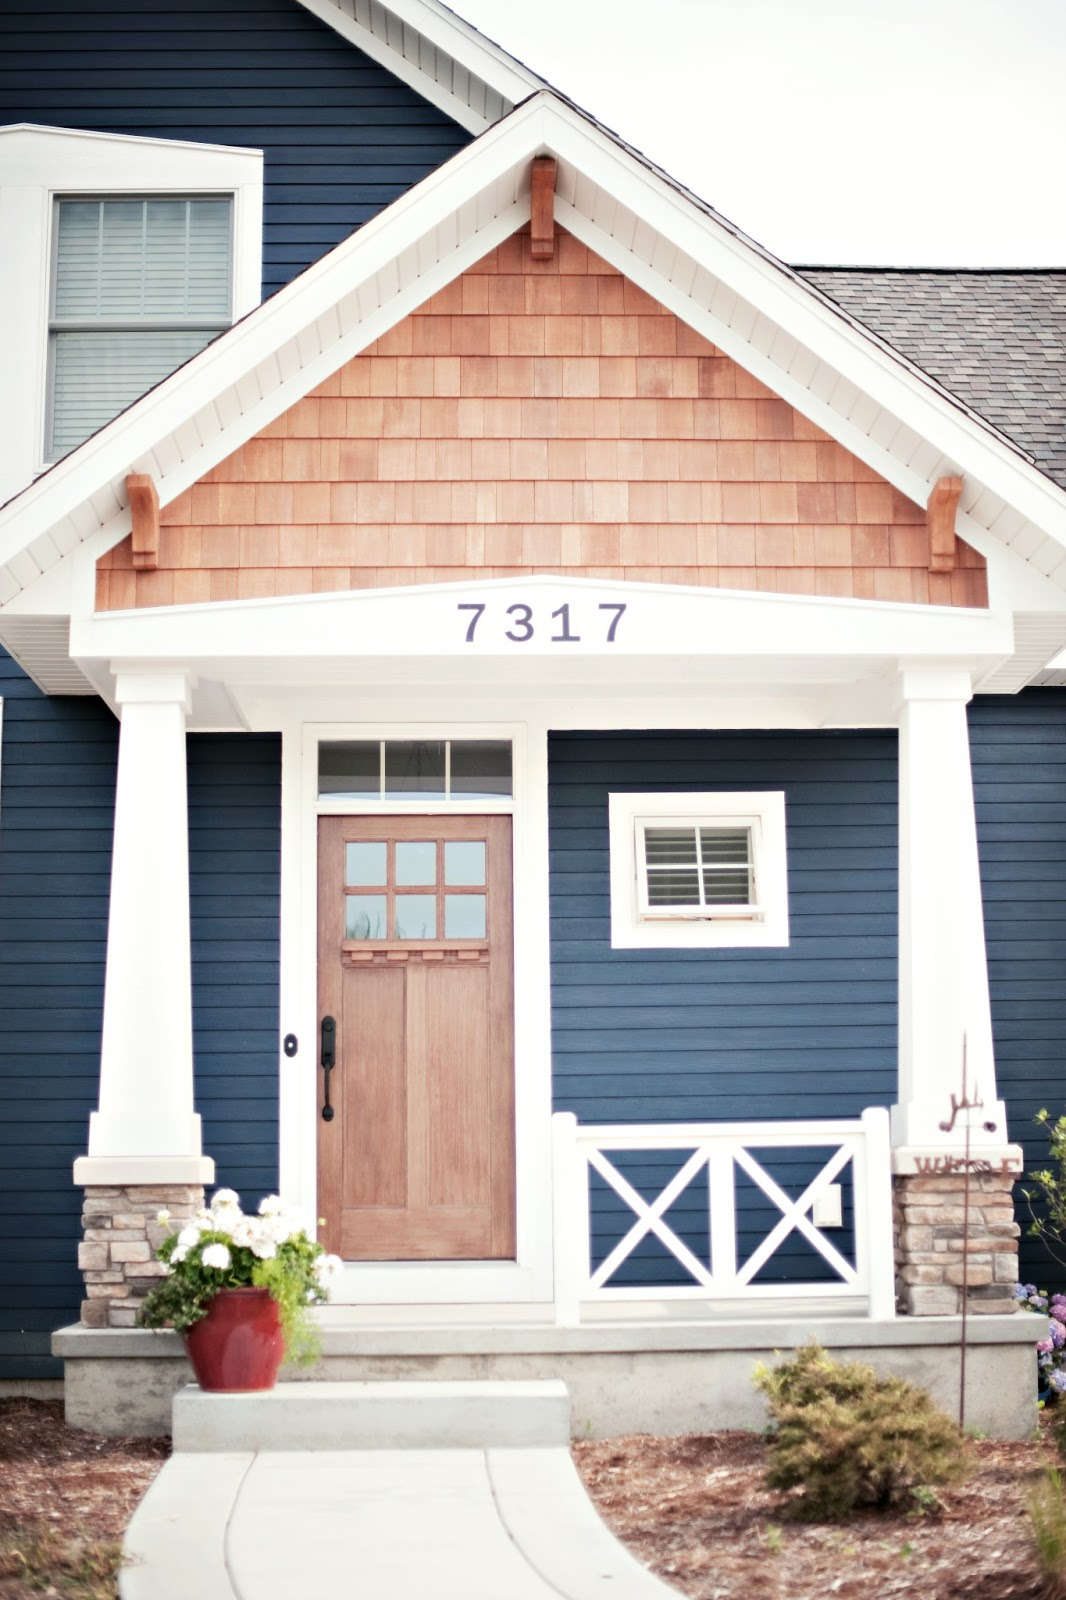 Lisa mende design best navy blue paint colors 8 of my favs - Coastal home exterior color schemes ...